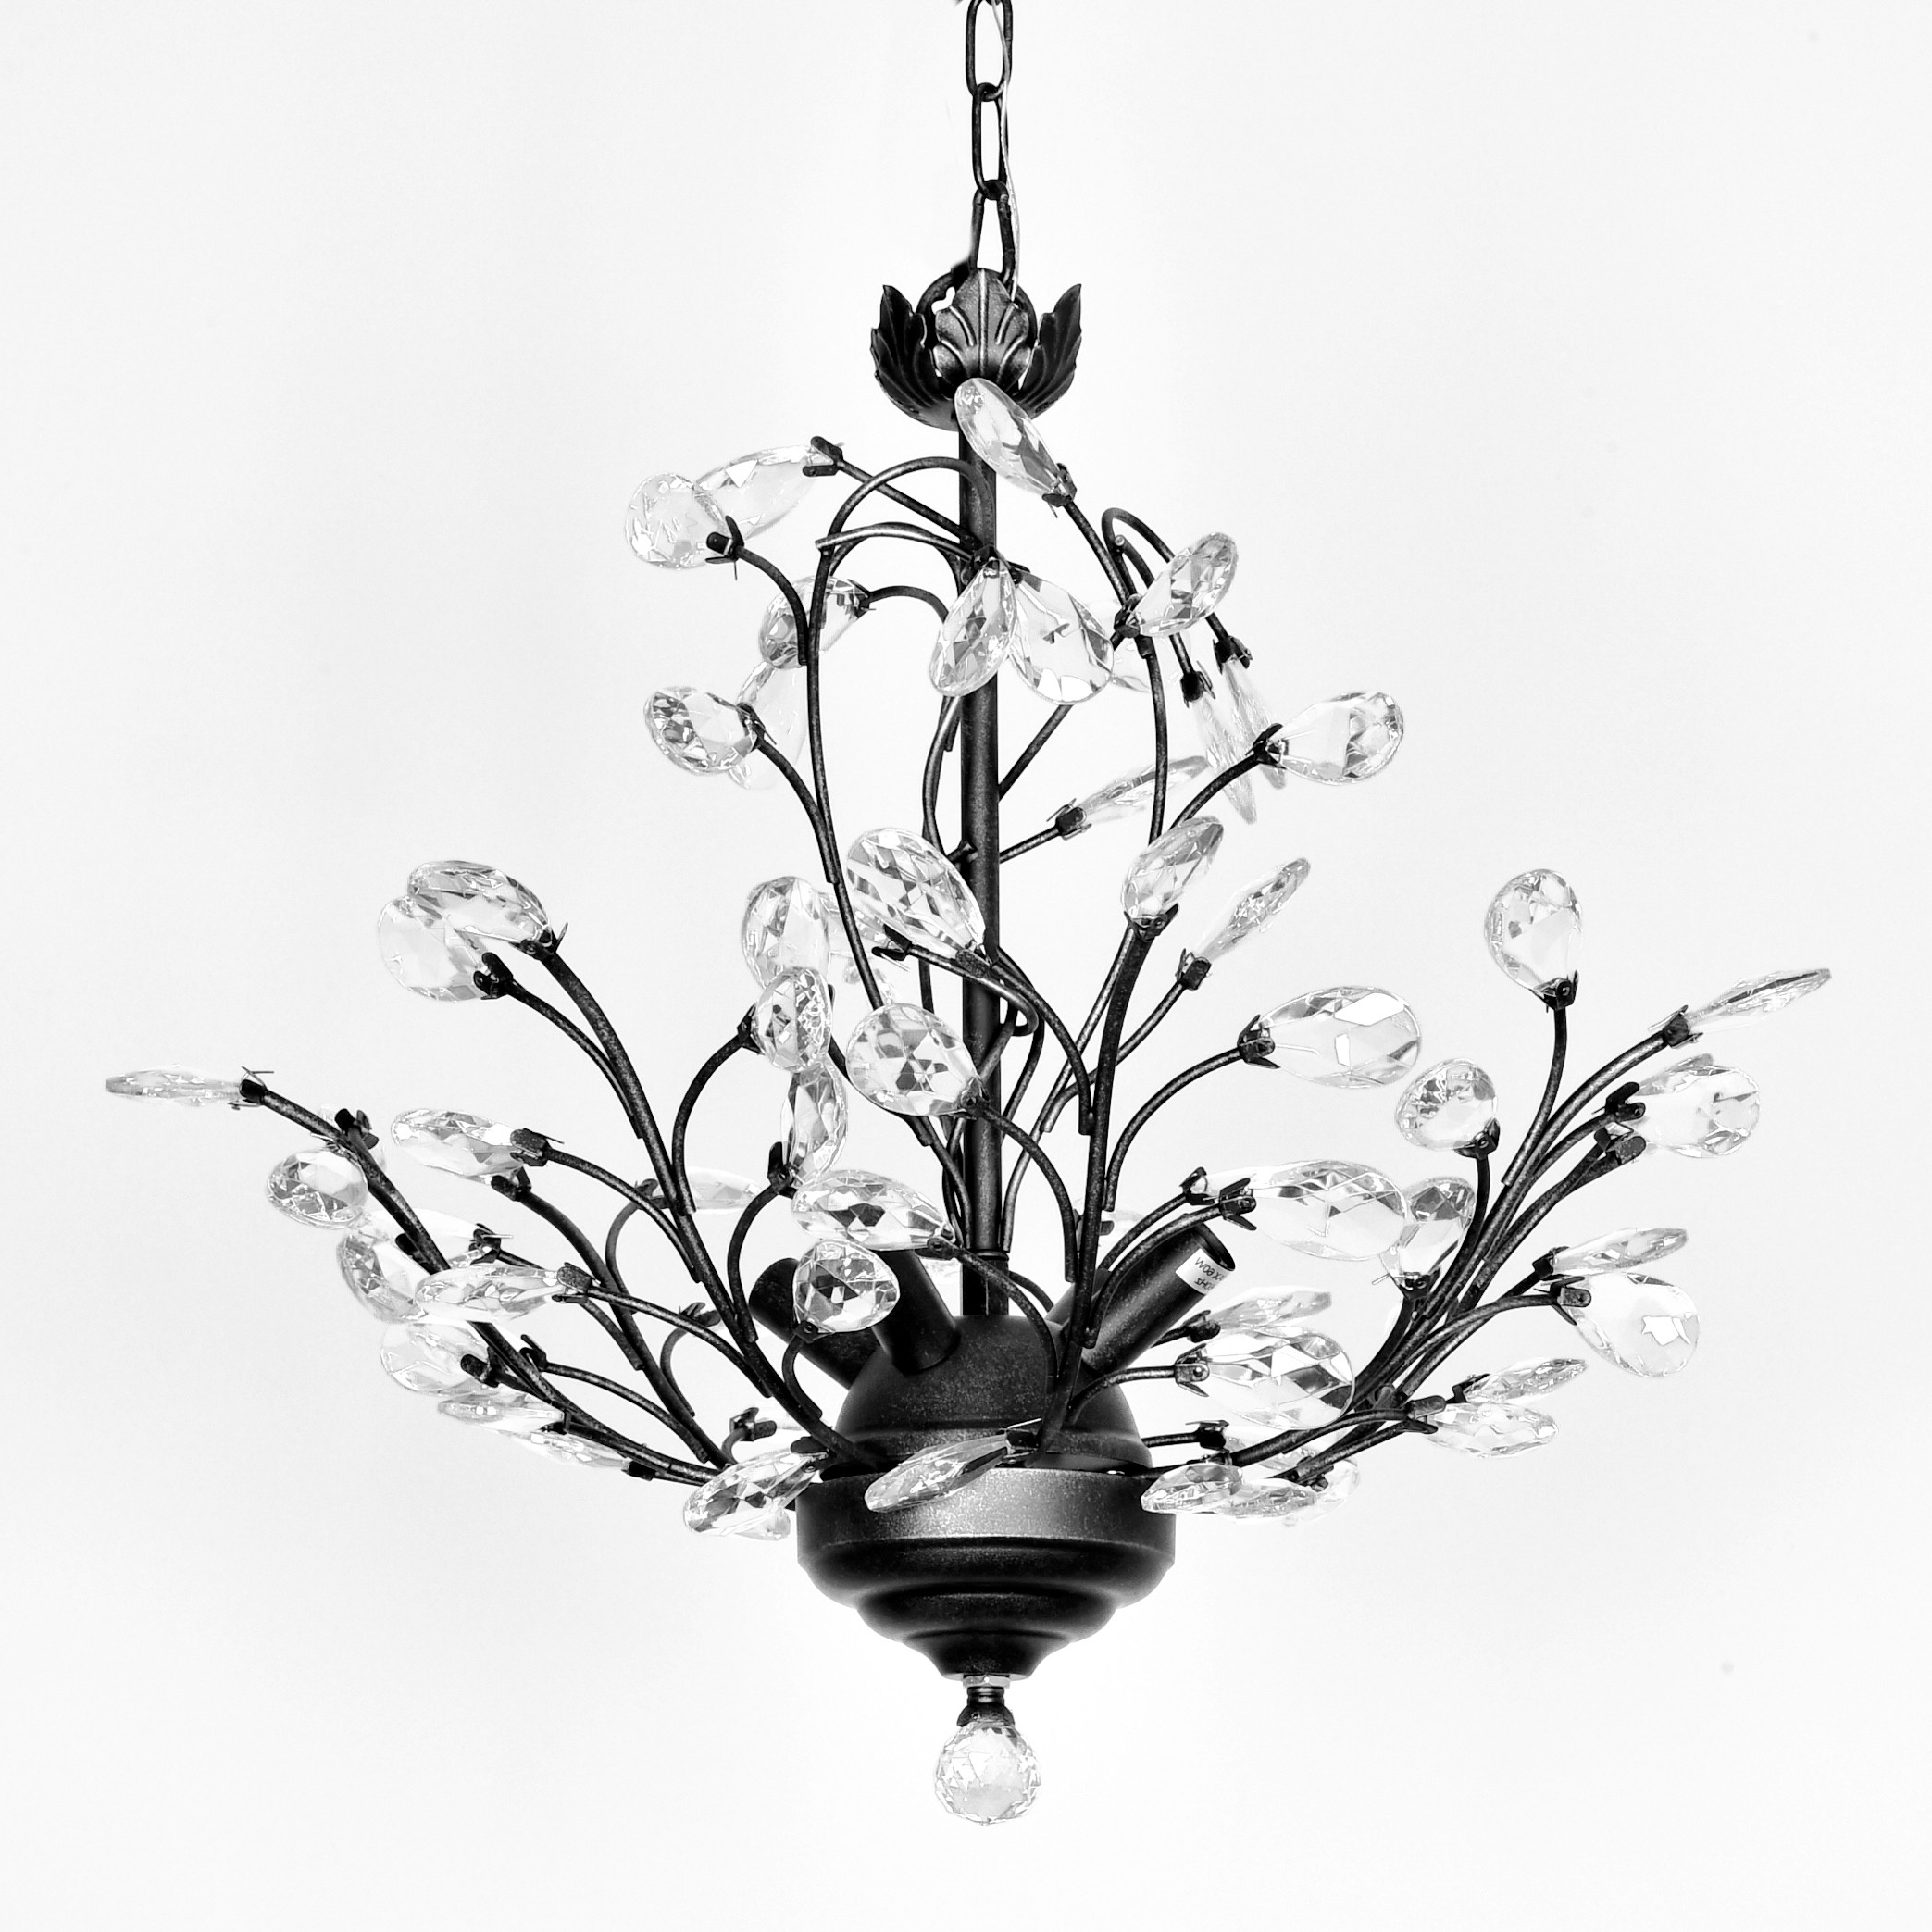 Wayfair Chandeliers Inside 2018 Chandelier: Astounding Wayfair Chandeliers Chandelier Pokemon (View 11 of 20)